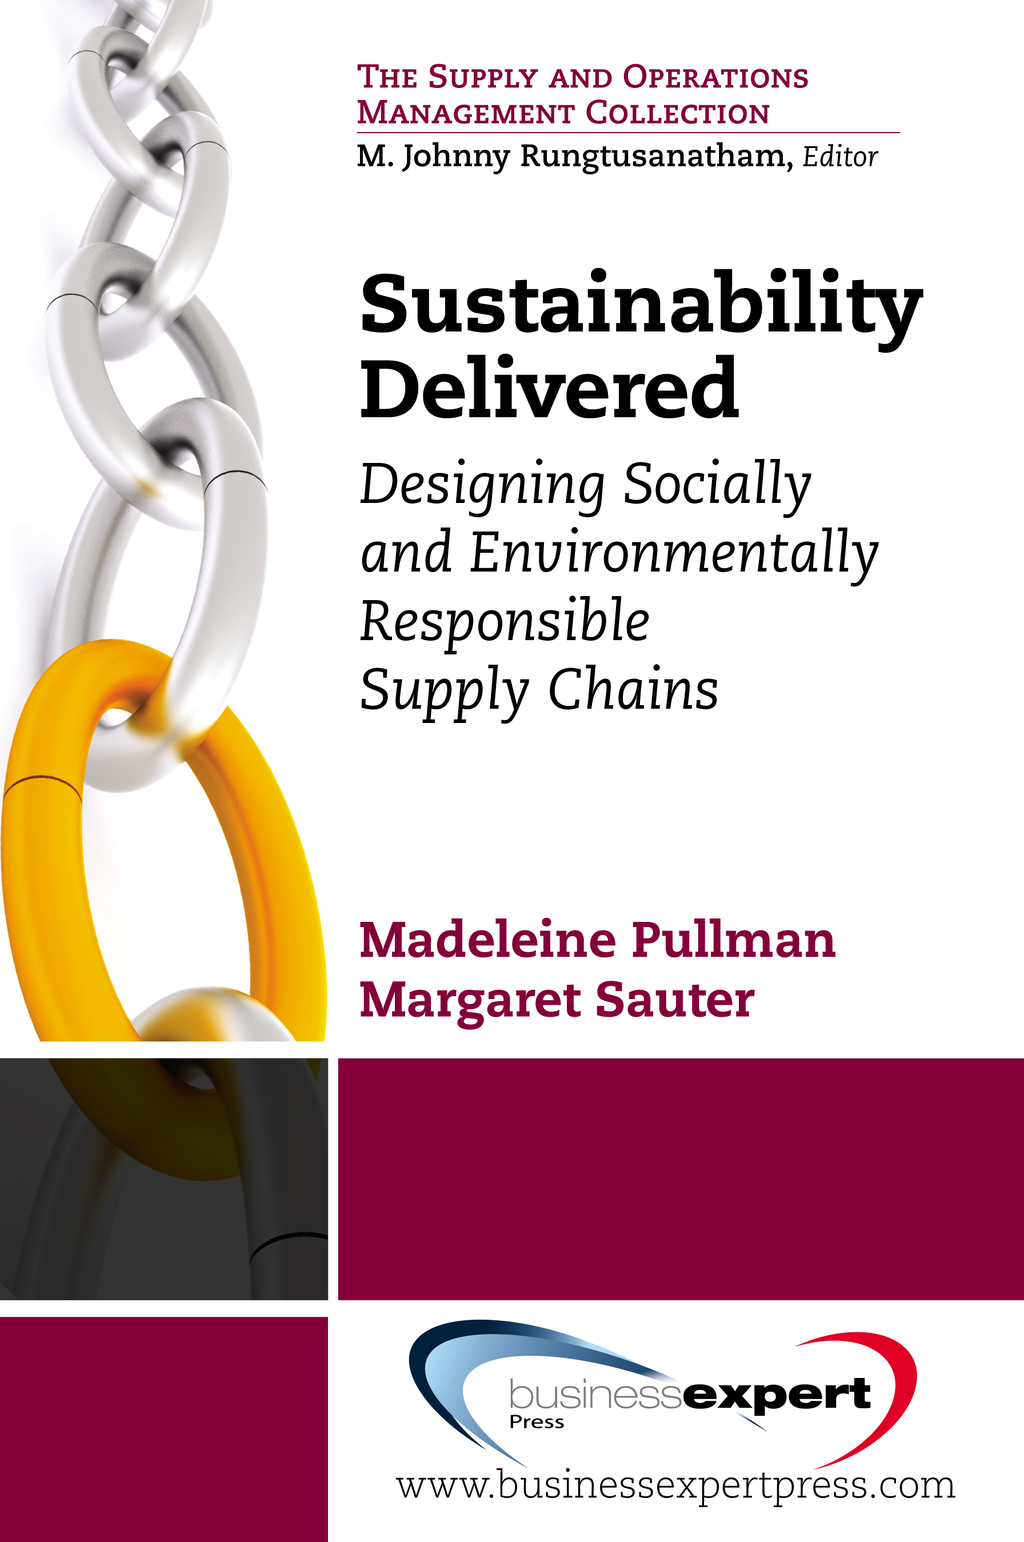 Sustainability Delivered: Designing Socially and Environmentally Responsible Supply Chains By: Madeleine Pullman,Margaret Sauter